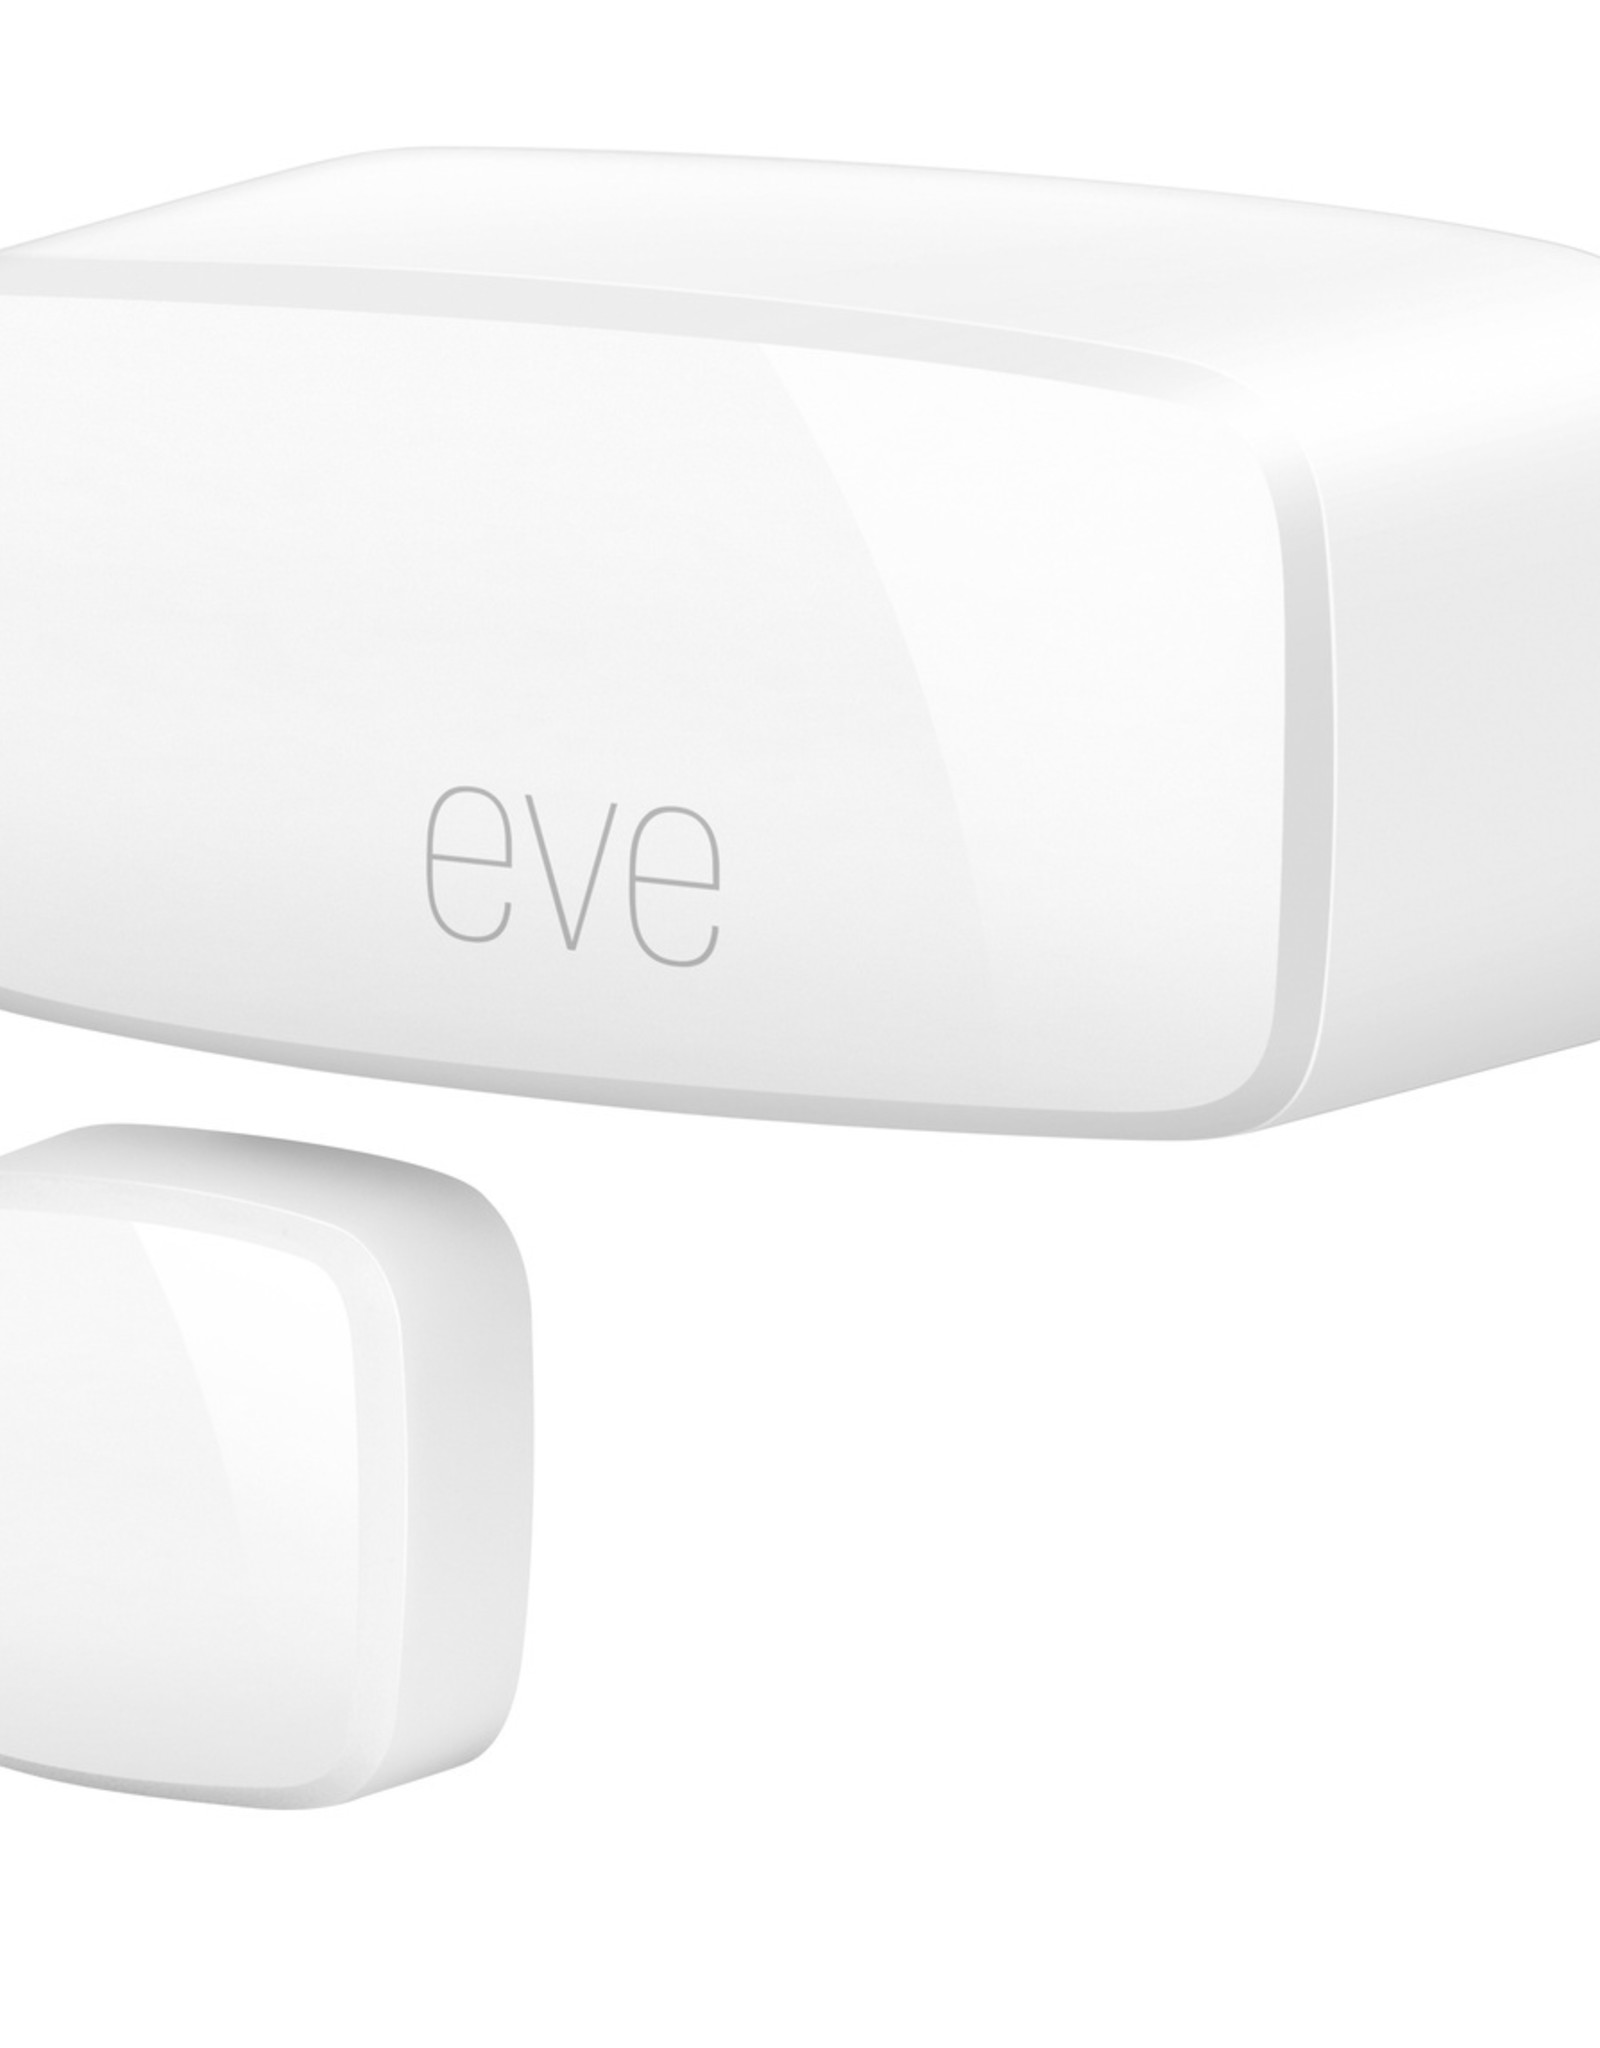 Elgato Eve Door & Window - Wireless Contact Sensor 572439